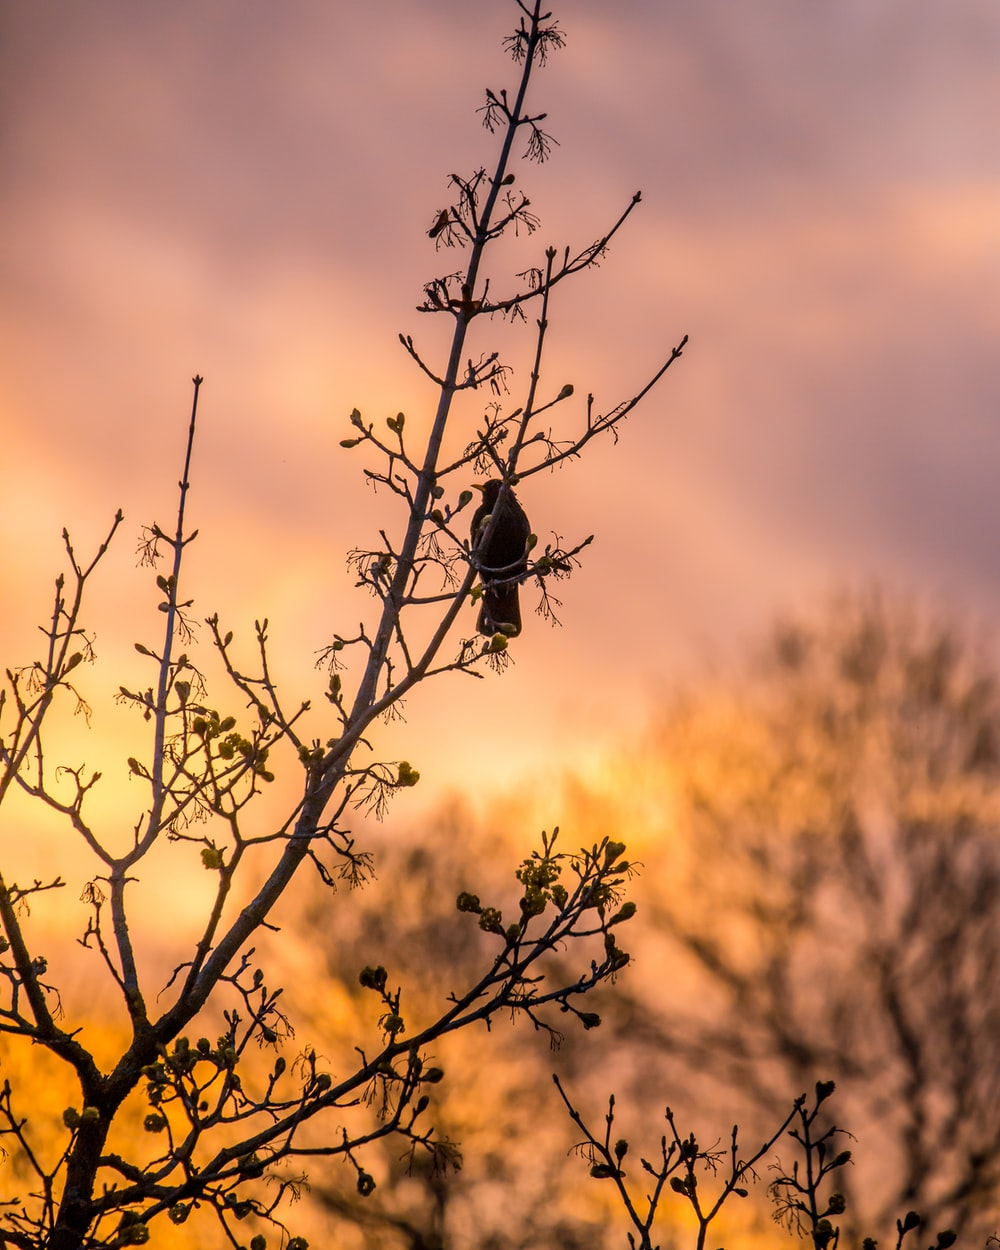 silhouette of bird on bare tree during daytime